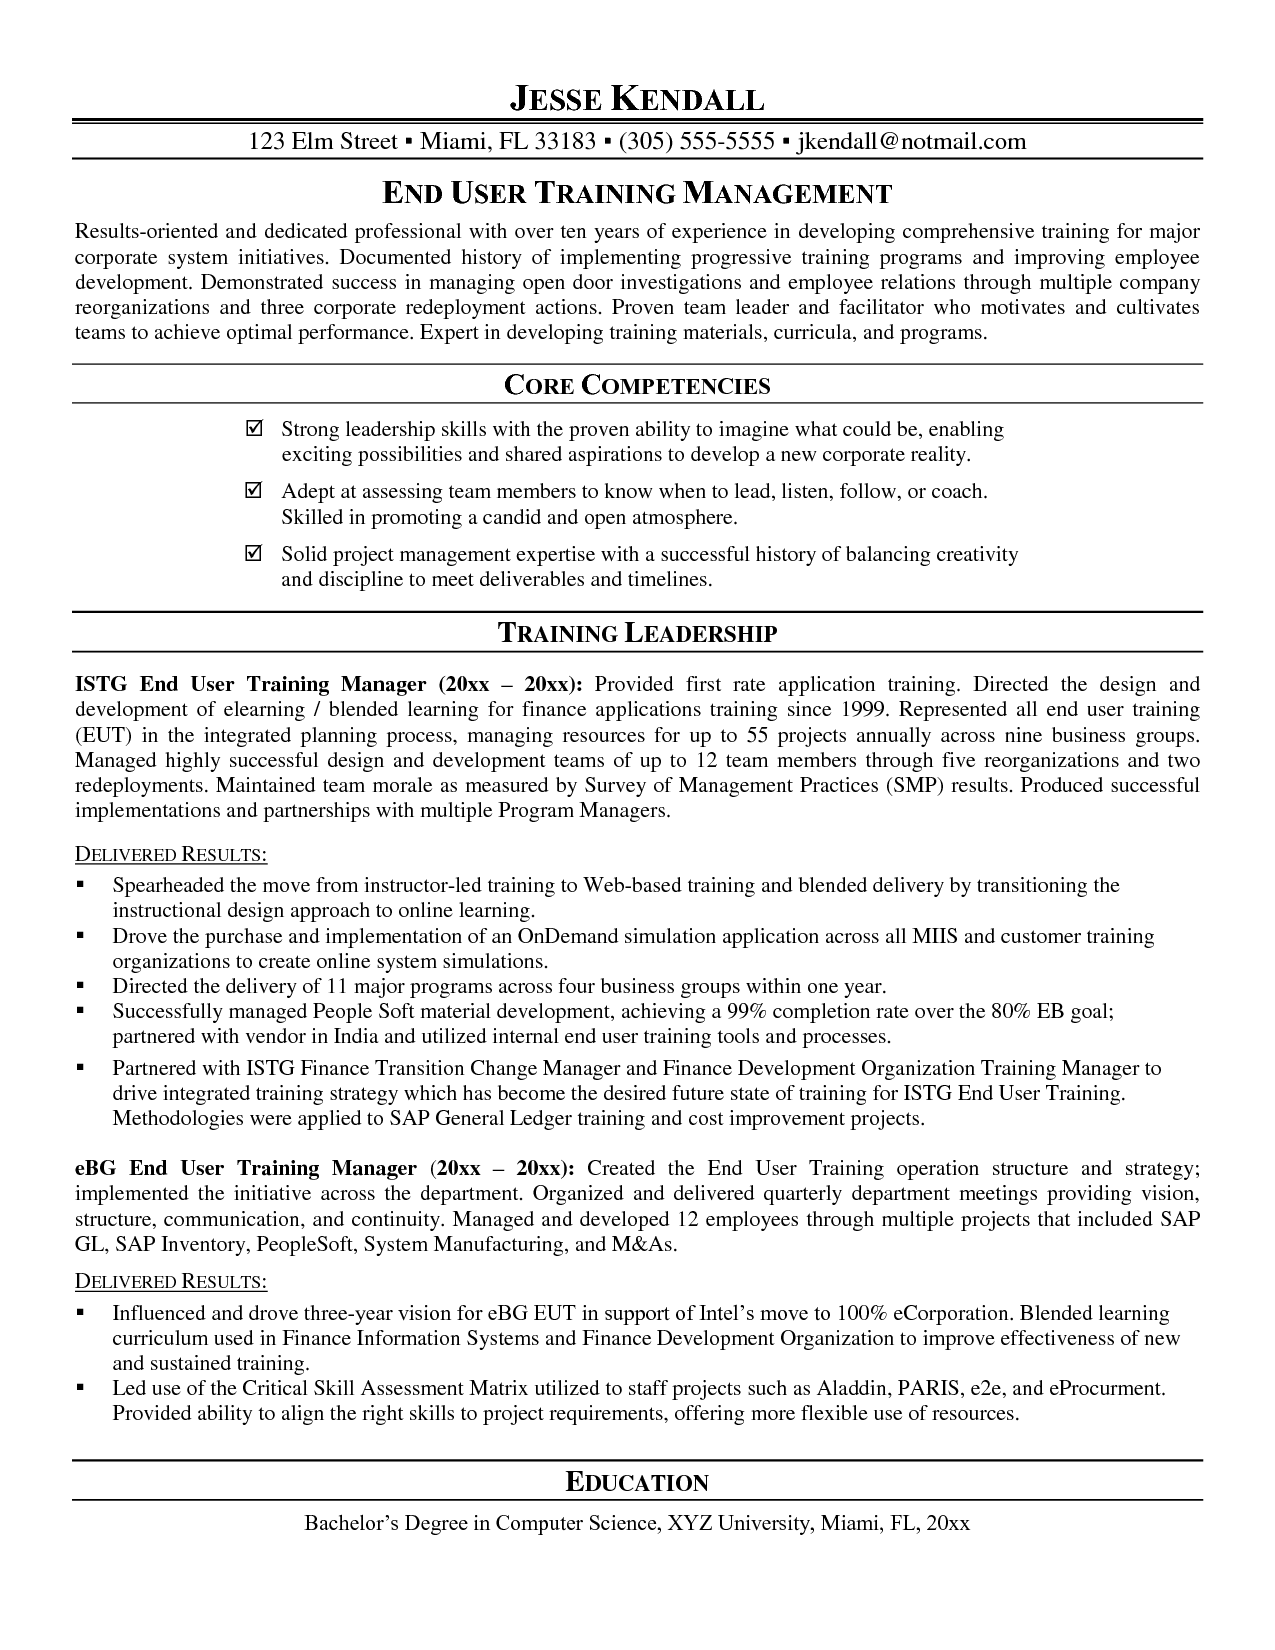 Training Manager Resume Training Manager Resume  Httpwwwresumecareertraining